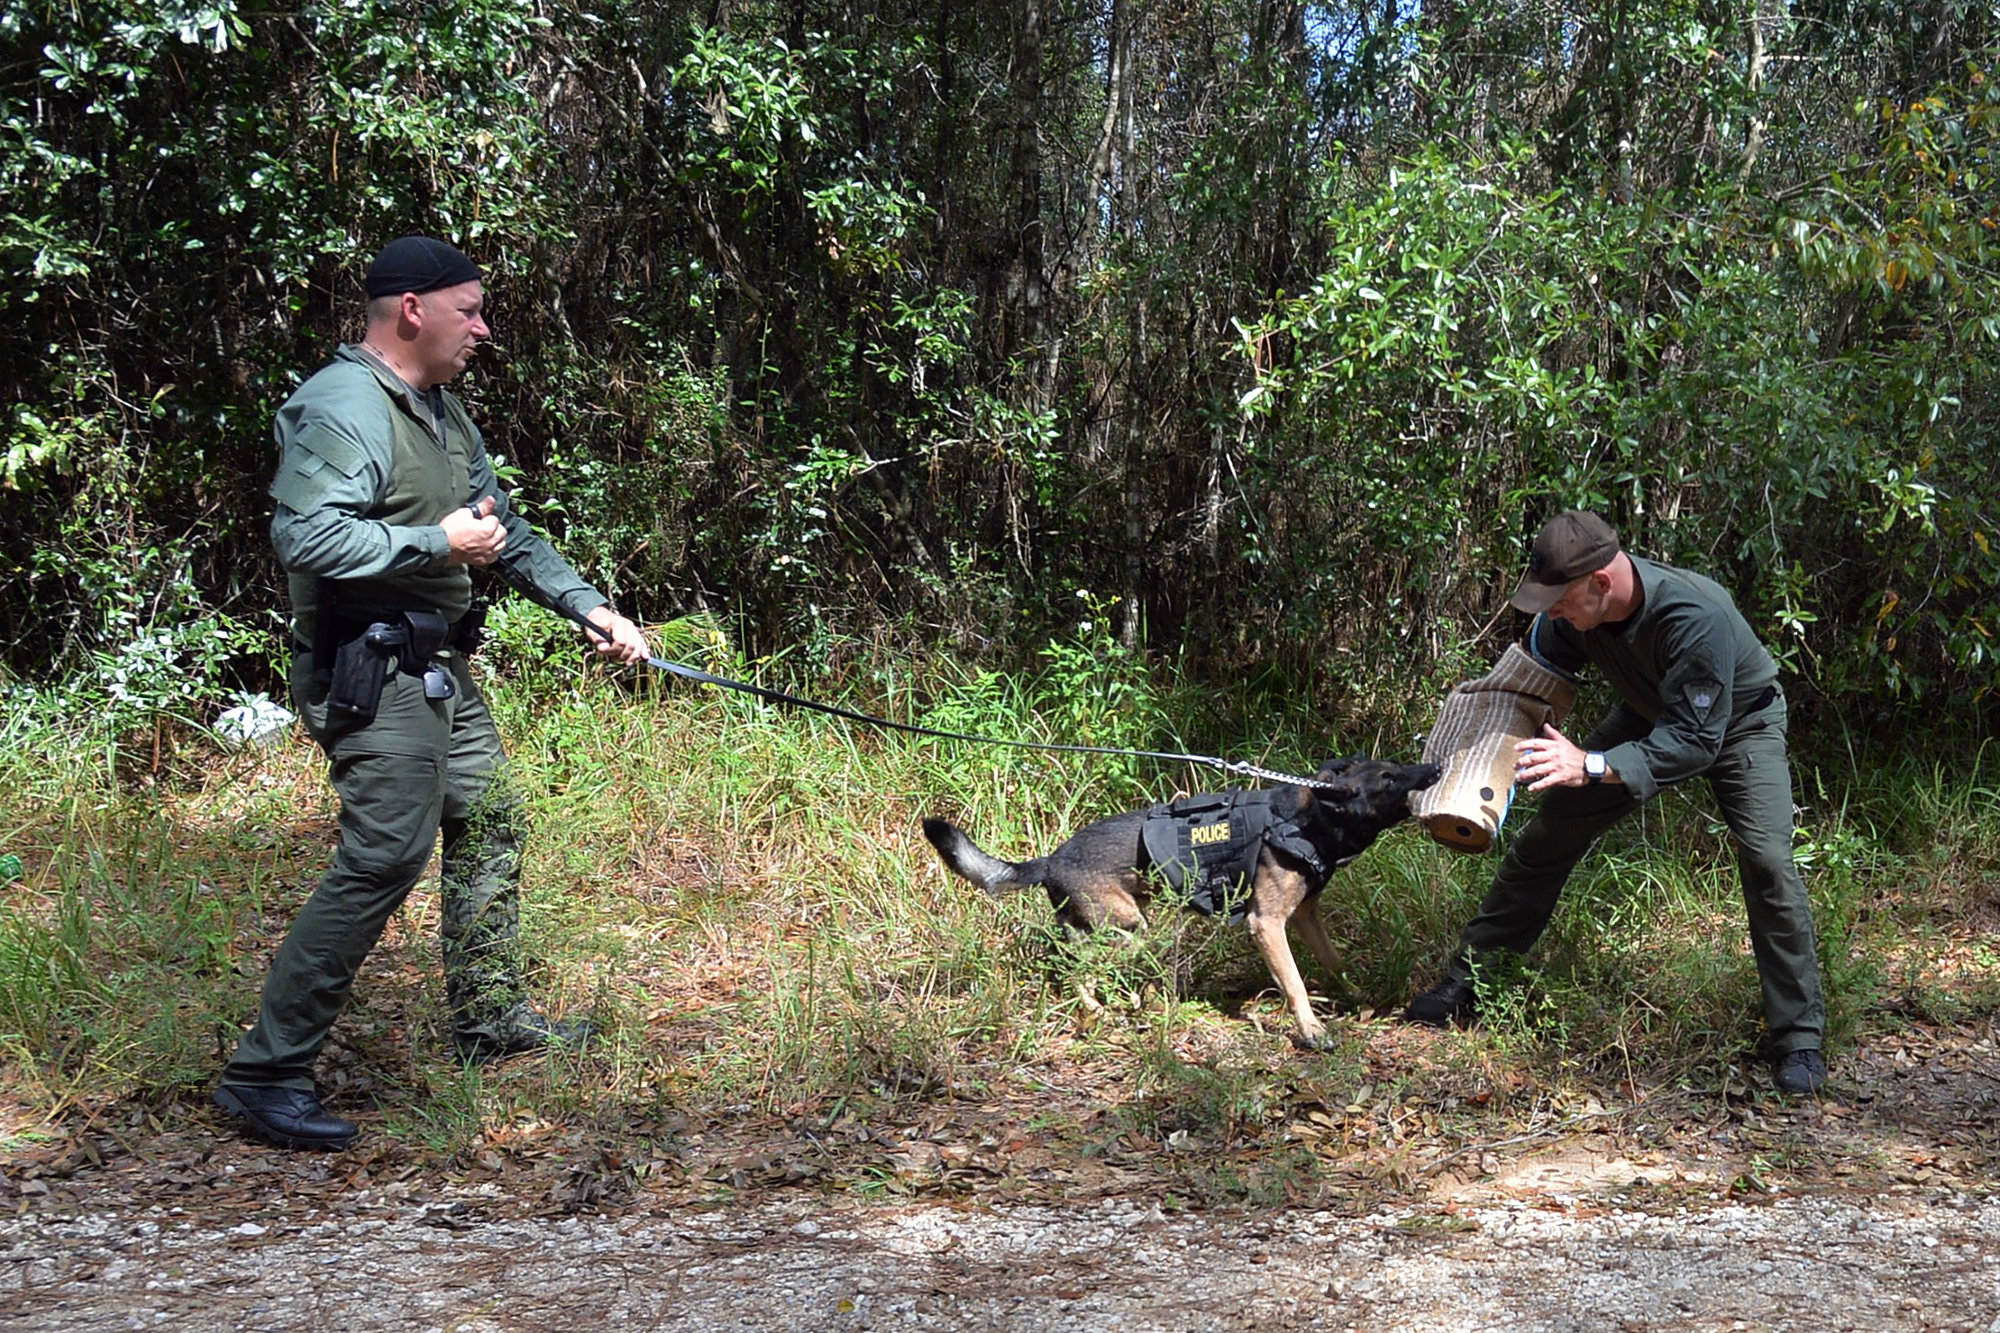 Officer William Byrd, left, commands his police dog during a training exercise in Mobile, Alabama, on Sept. 24, 2020. Officer Justin Washam wears a protective sleeve for a bite demonstration.